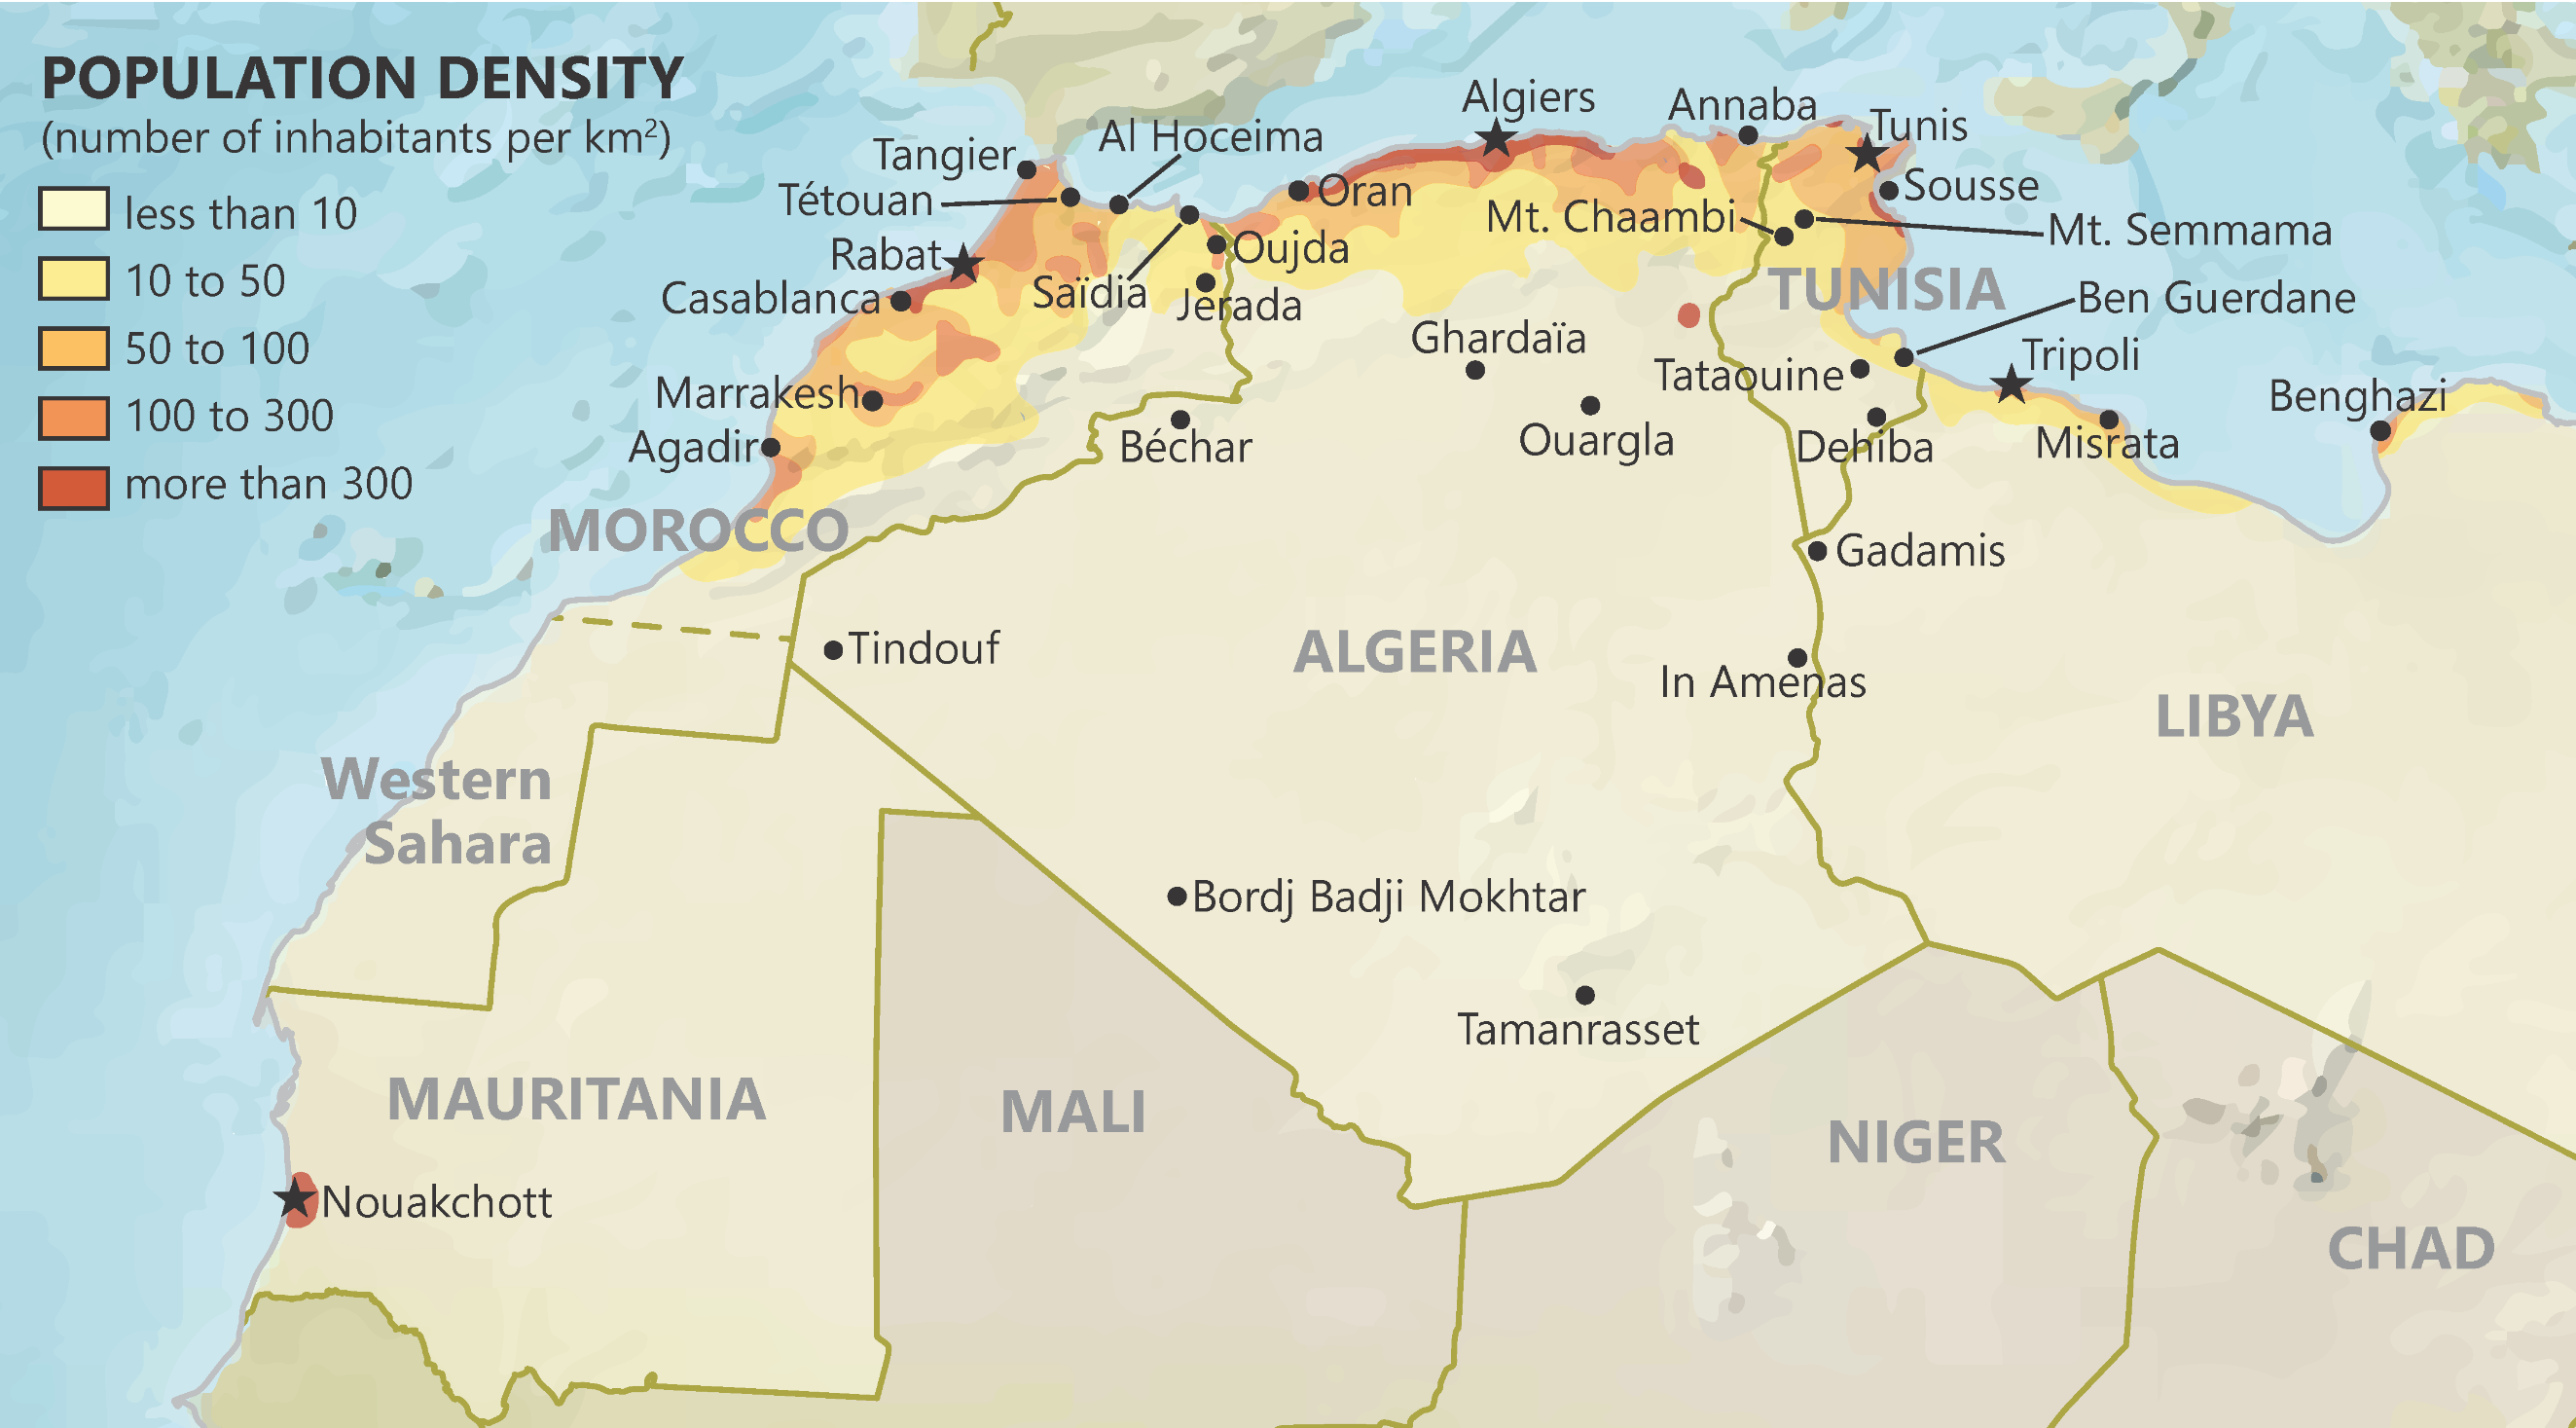 Countries of the Maghreb Region - Population Density